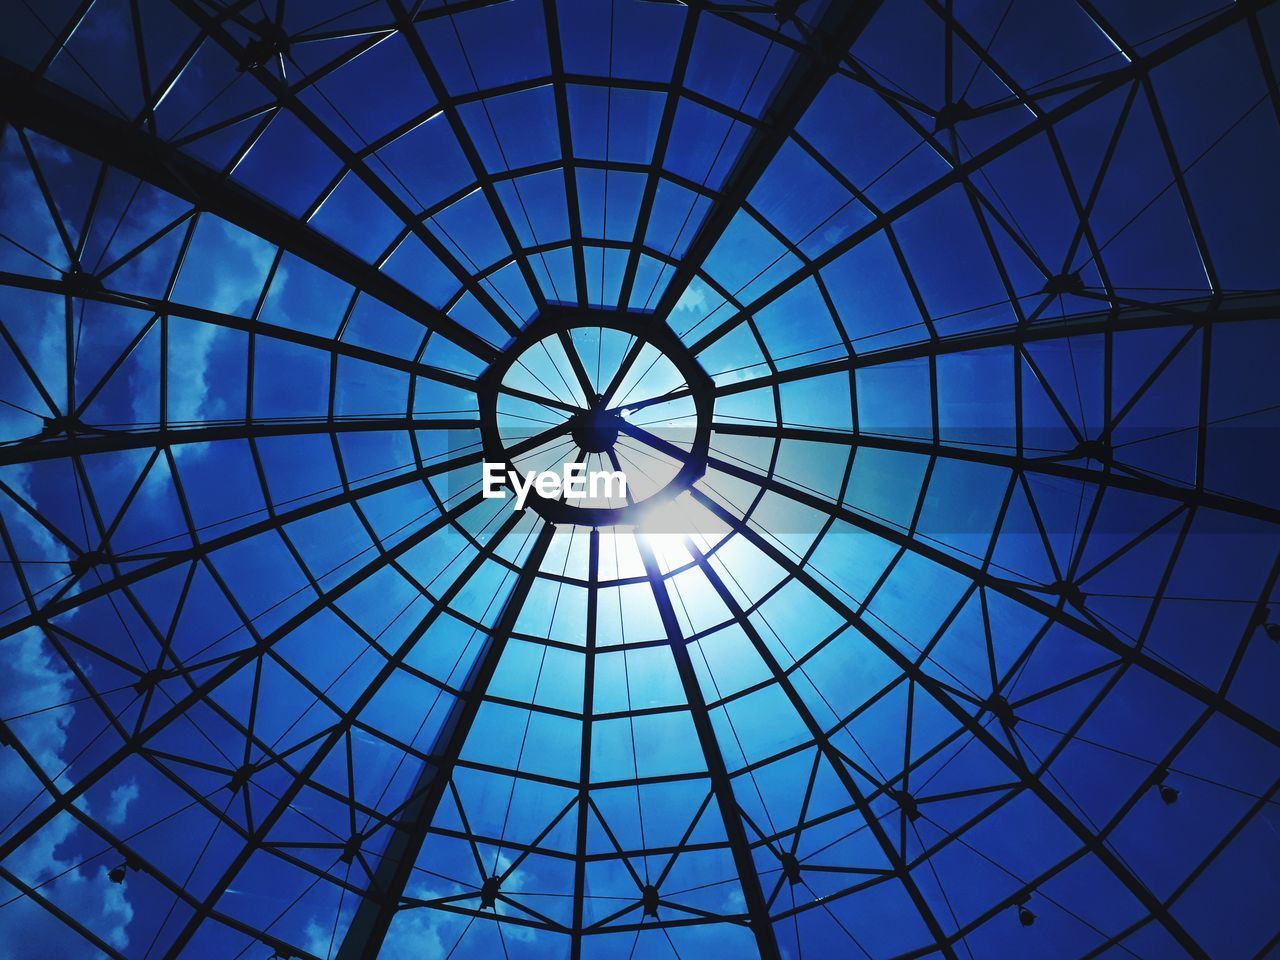 geometric shape, pattern, built structure, low angle view, architecture, shape, blue, circle, indoors, glass - material, sky, sunlight, ceiling, design, no people, full frame, directly below, day, skylight, backgrounds, modern, architecture and art, cupola, ornate